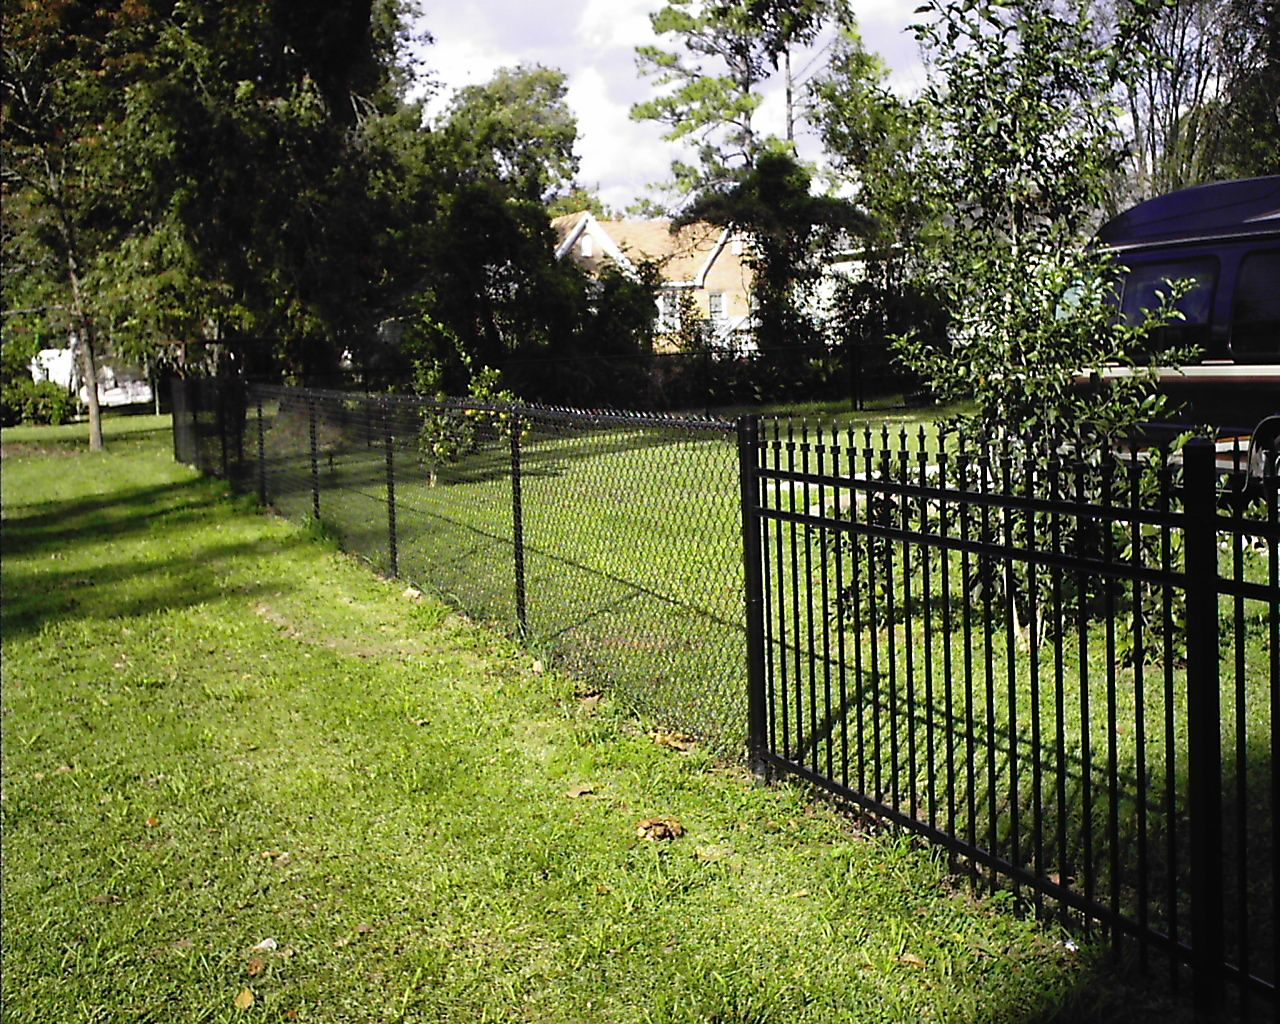 Privacy screen for chain link fence sears - Black Chain Link Fence